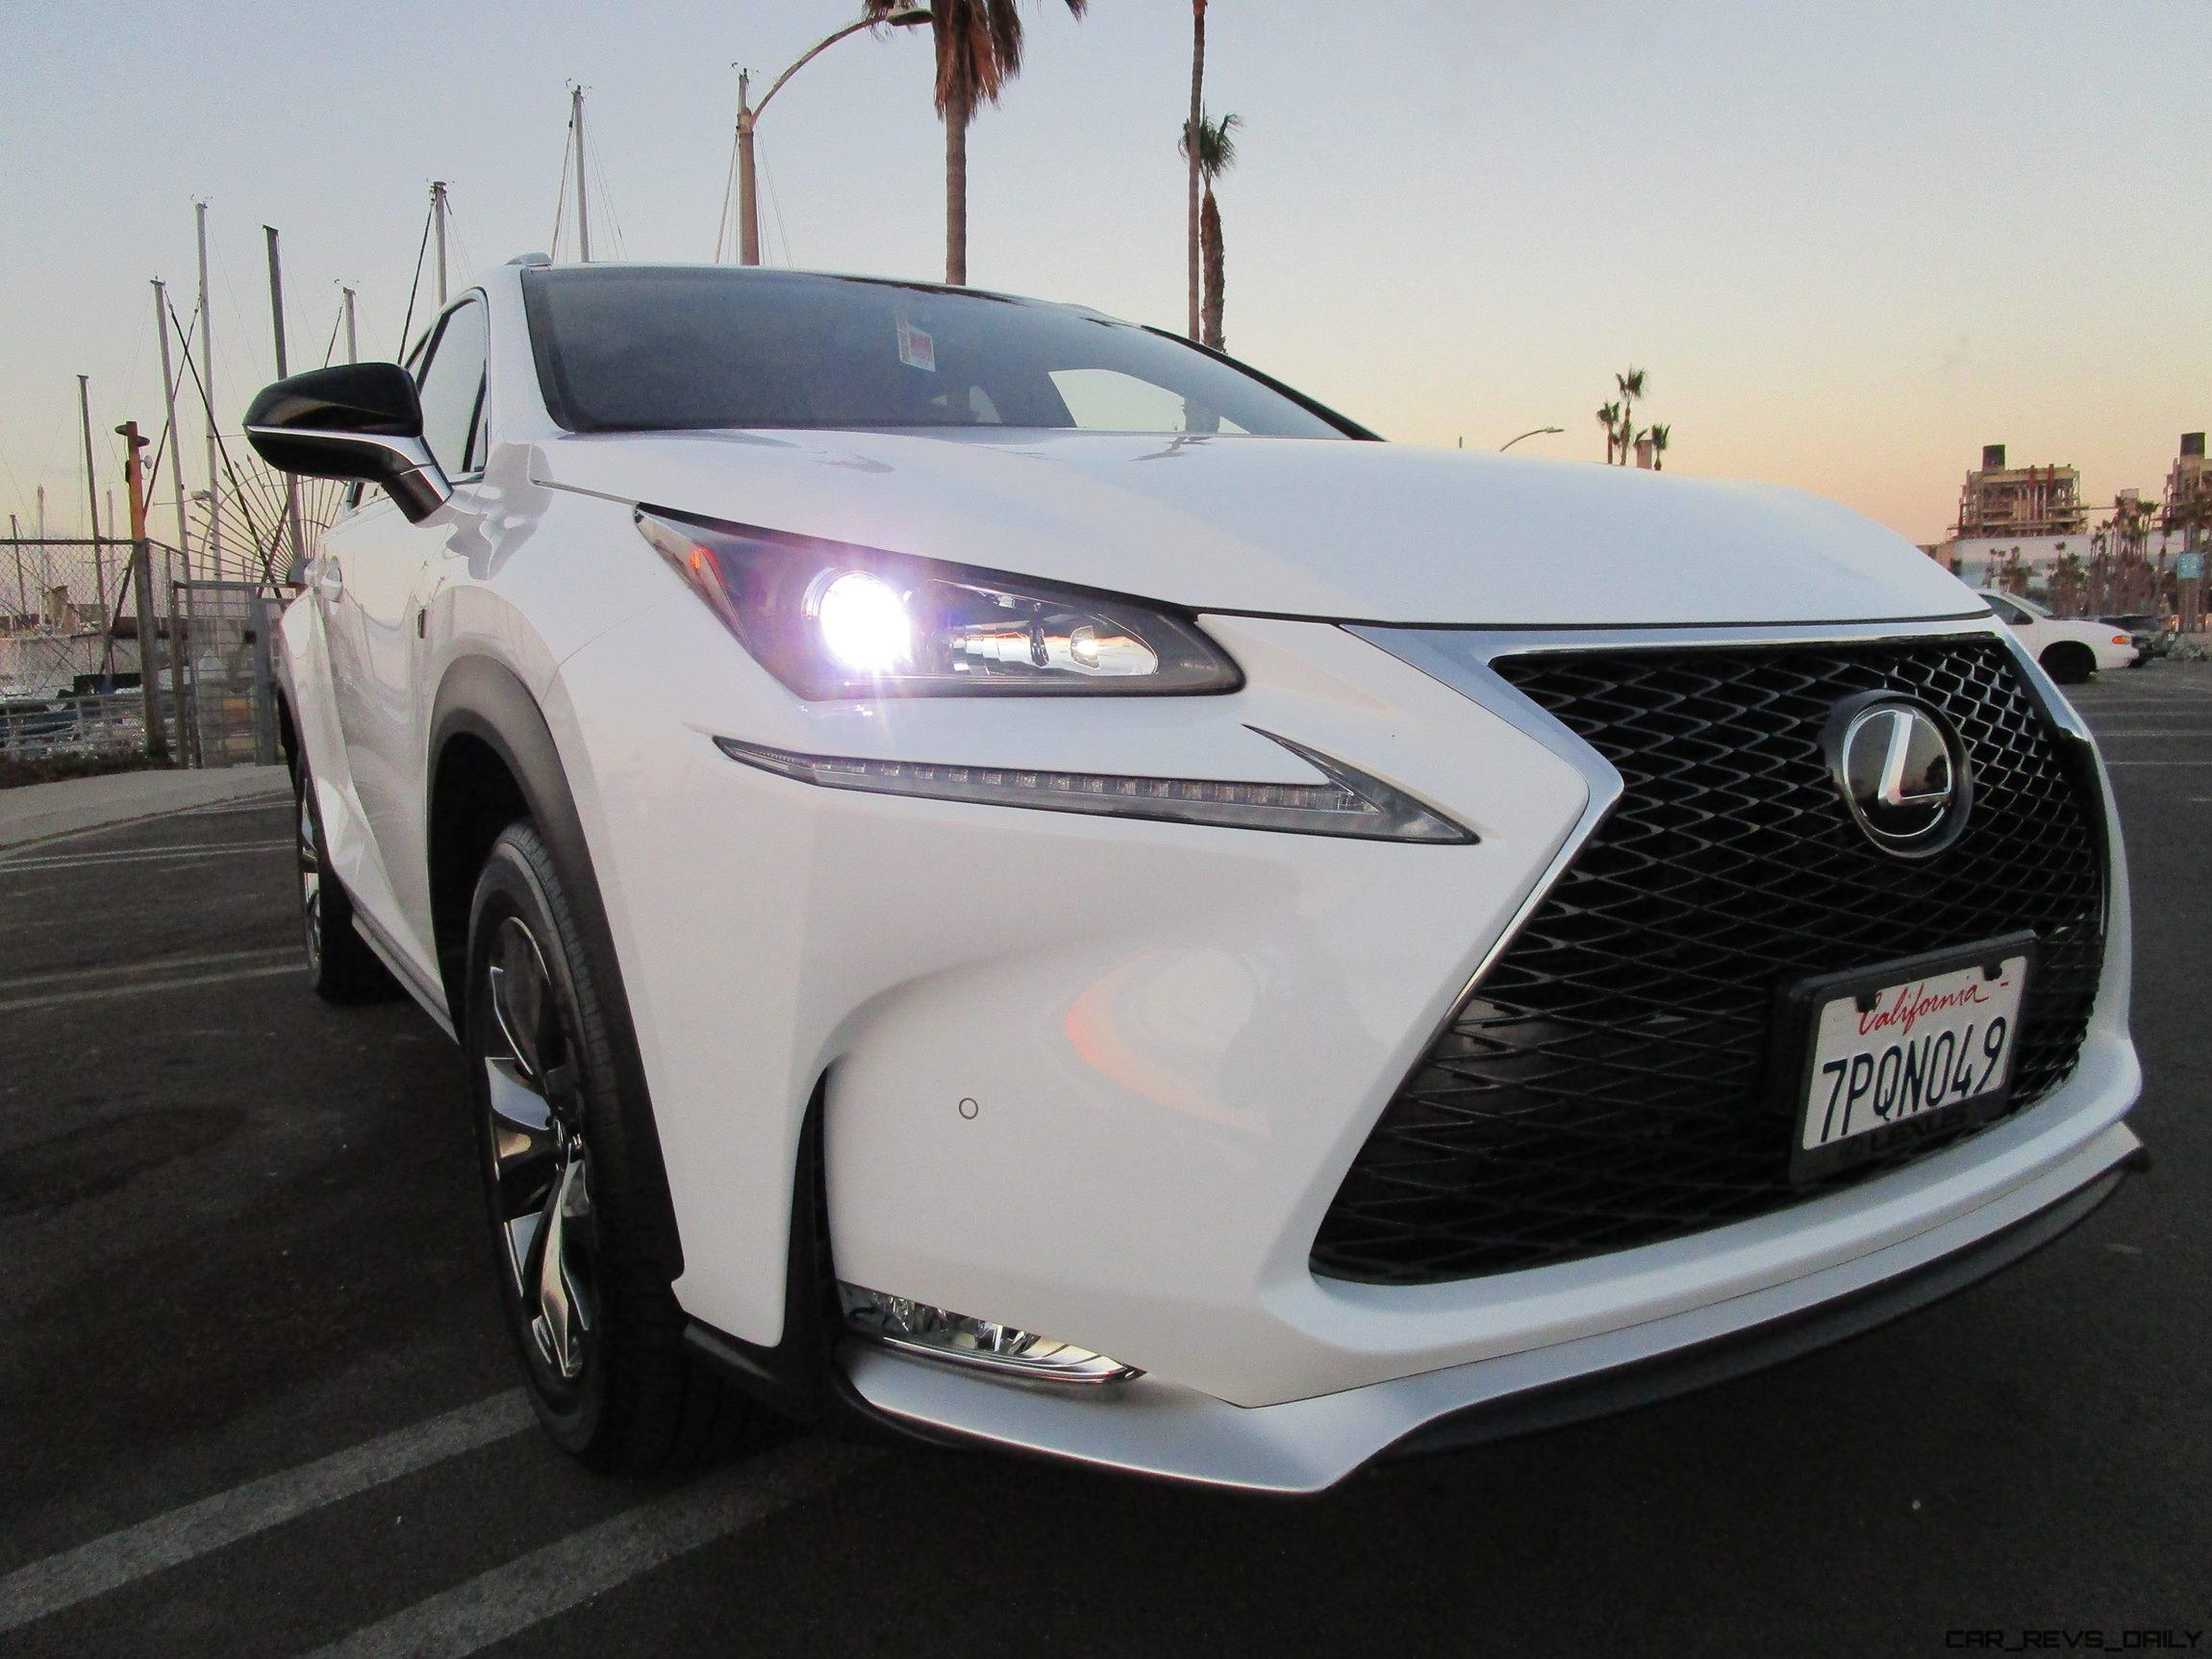 2016 Lexus NX200t F SPORT AWD Road Test Review By Ben Lewis